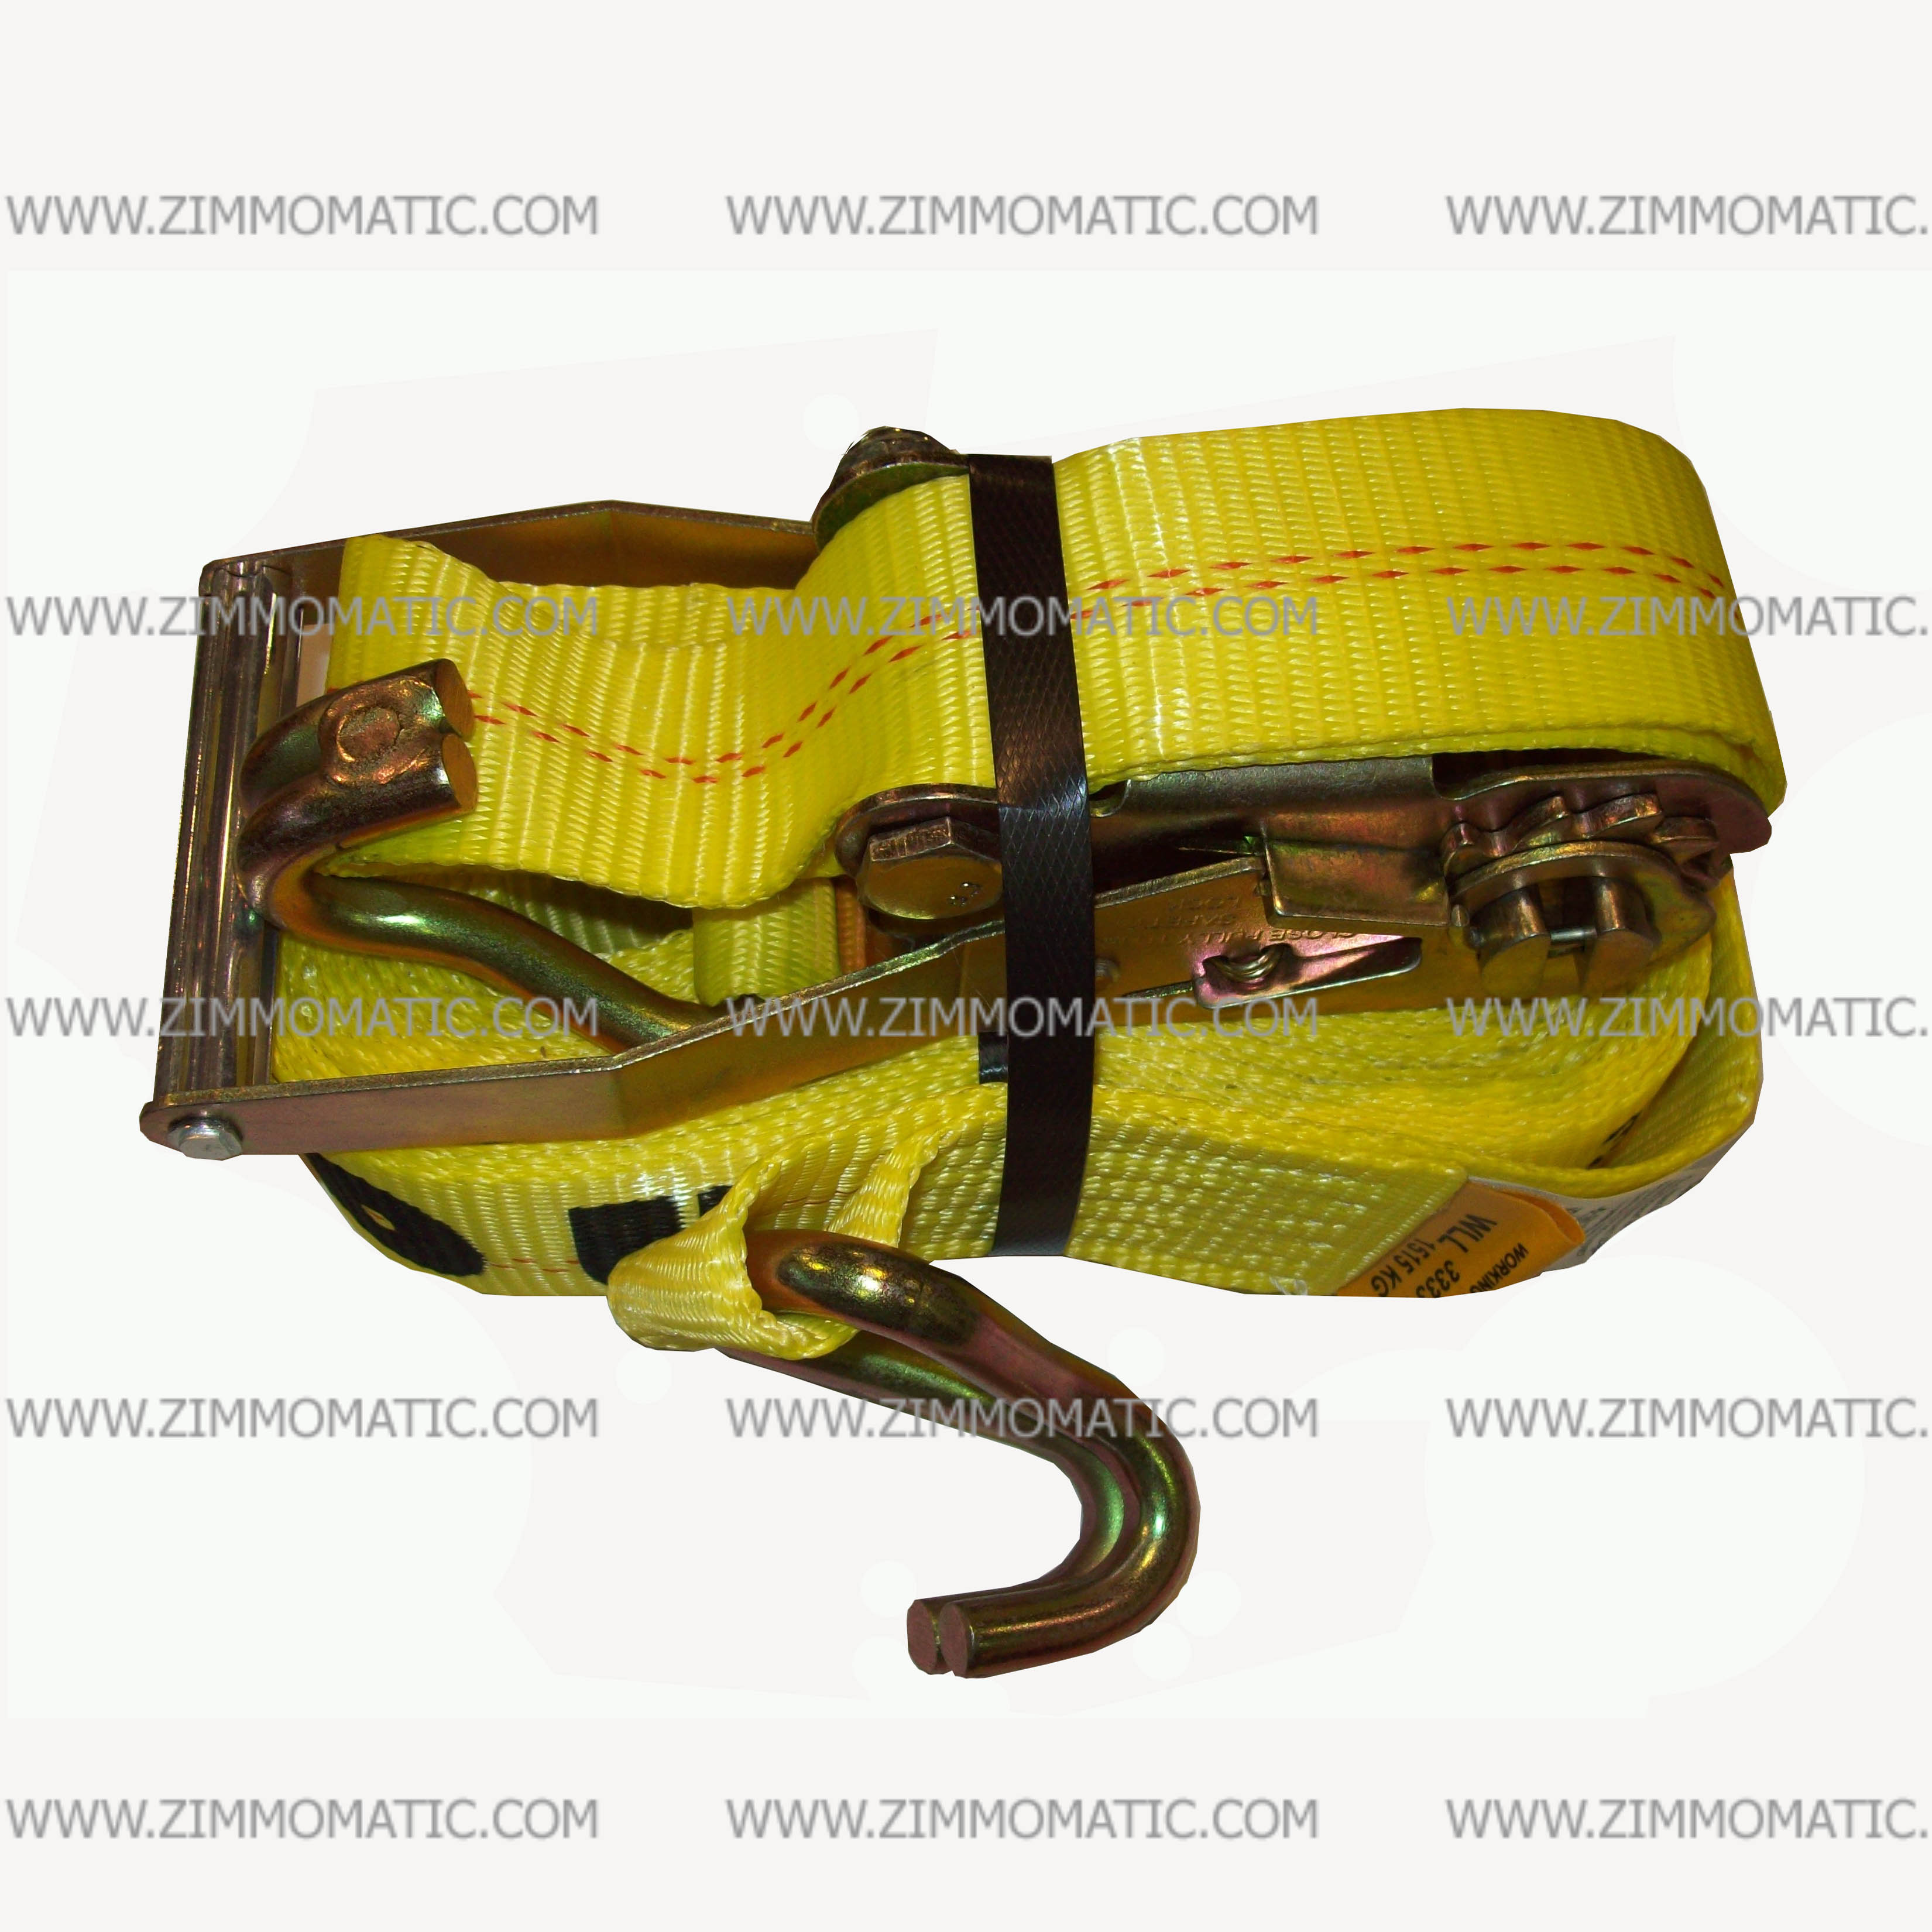 ratchet strap, 2 inch x 27 foot, wire hook